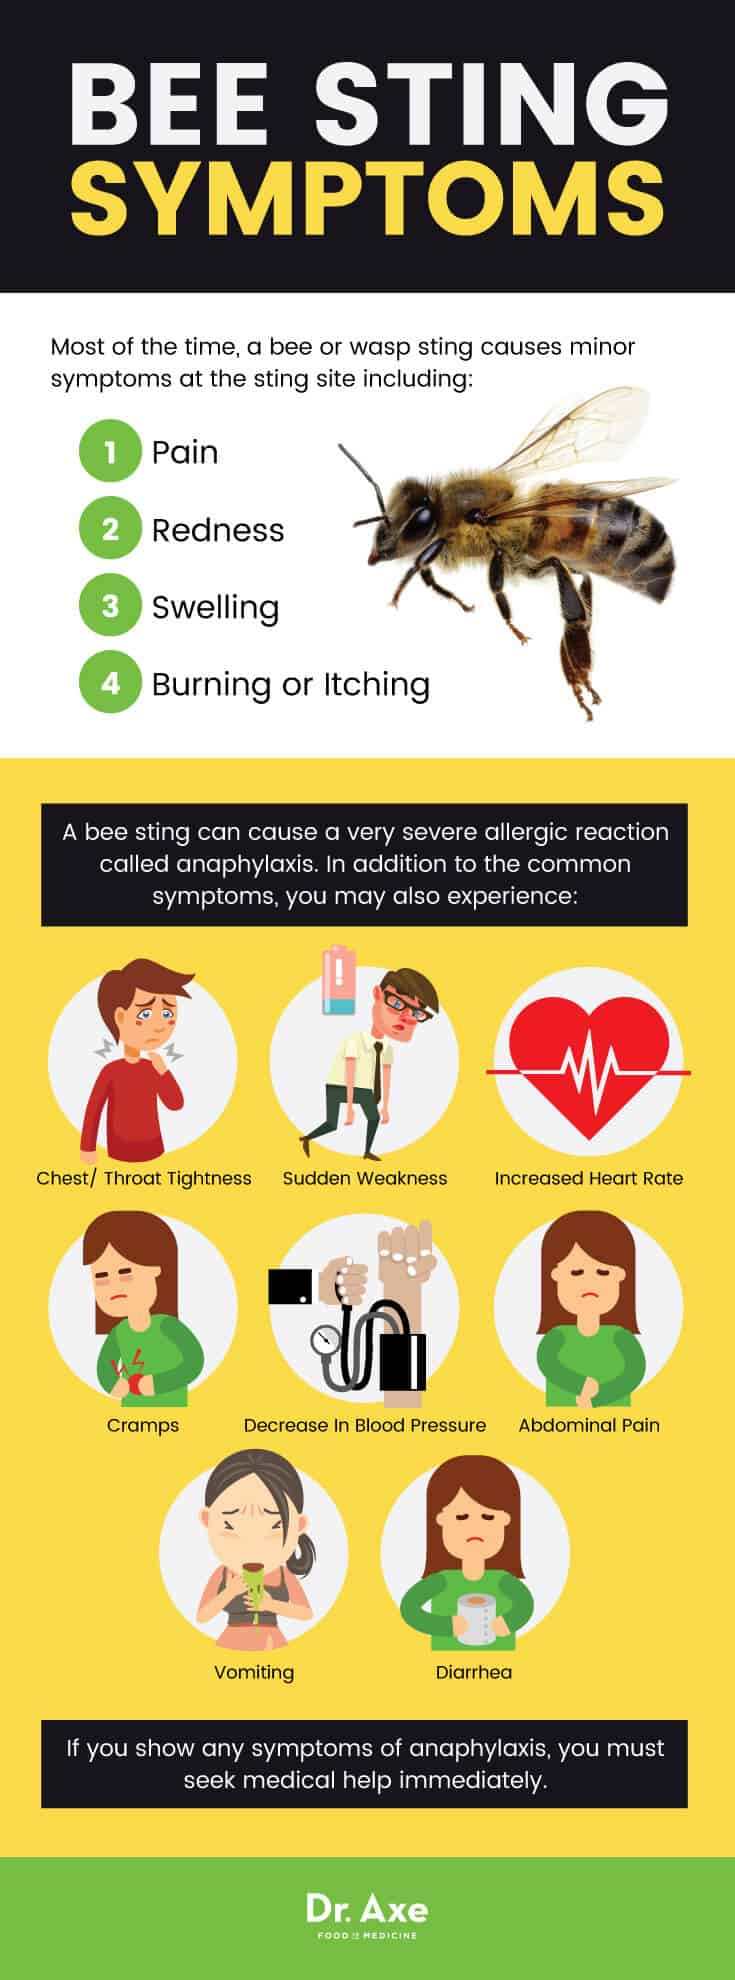 Bee sting treatment: bee sting symptoms - Dr. Axe